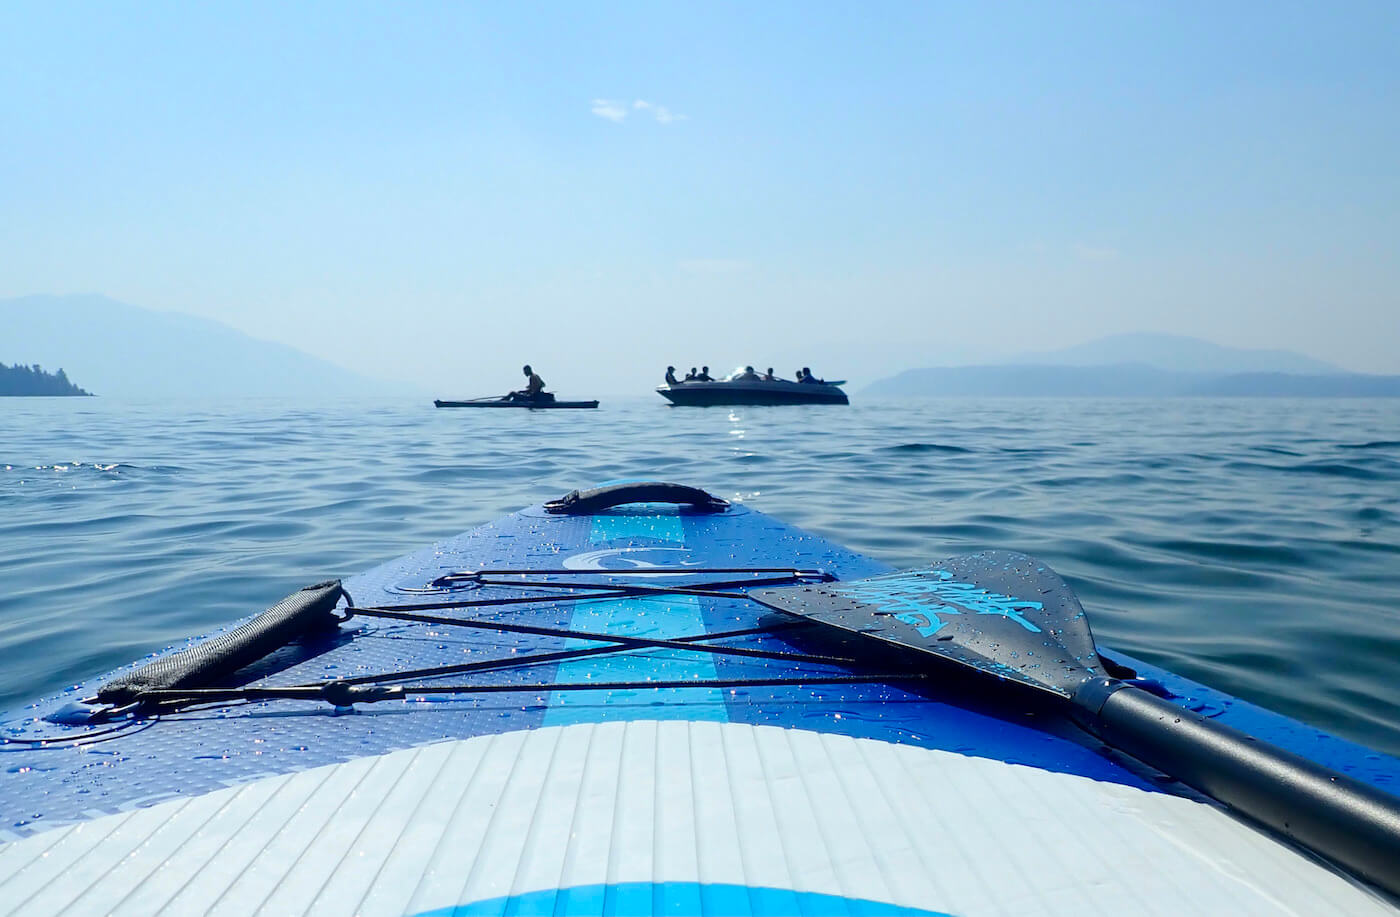 This review photo shows the Outdoor Master Infinite iSUP Chasing Blue paddle board on a lake during the testing process.